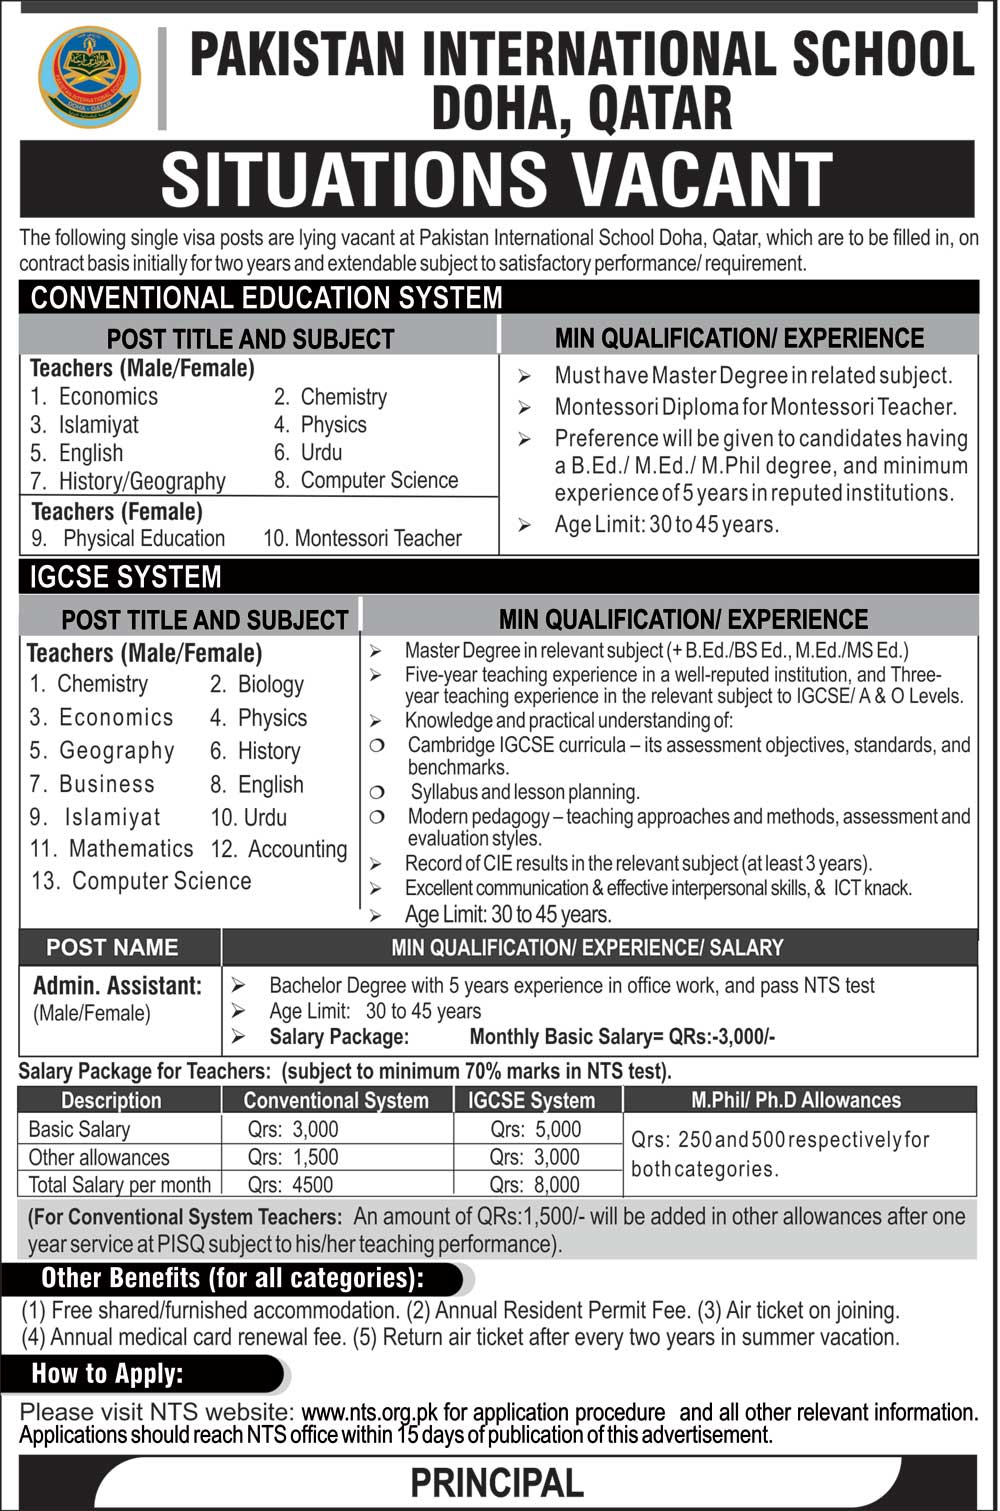 Pakistan International School Doha / Qatar Jobs 2019 for Admin